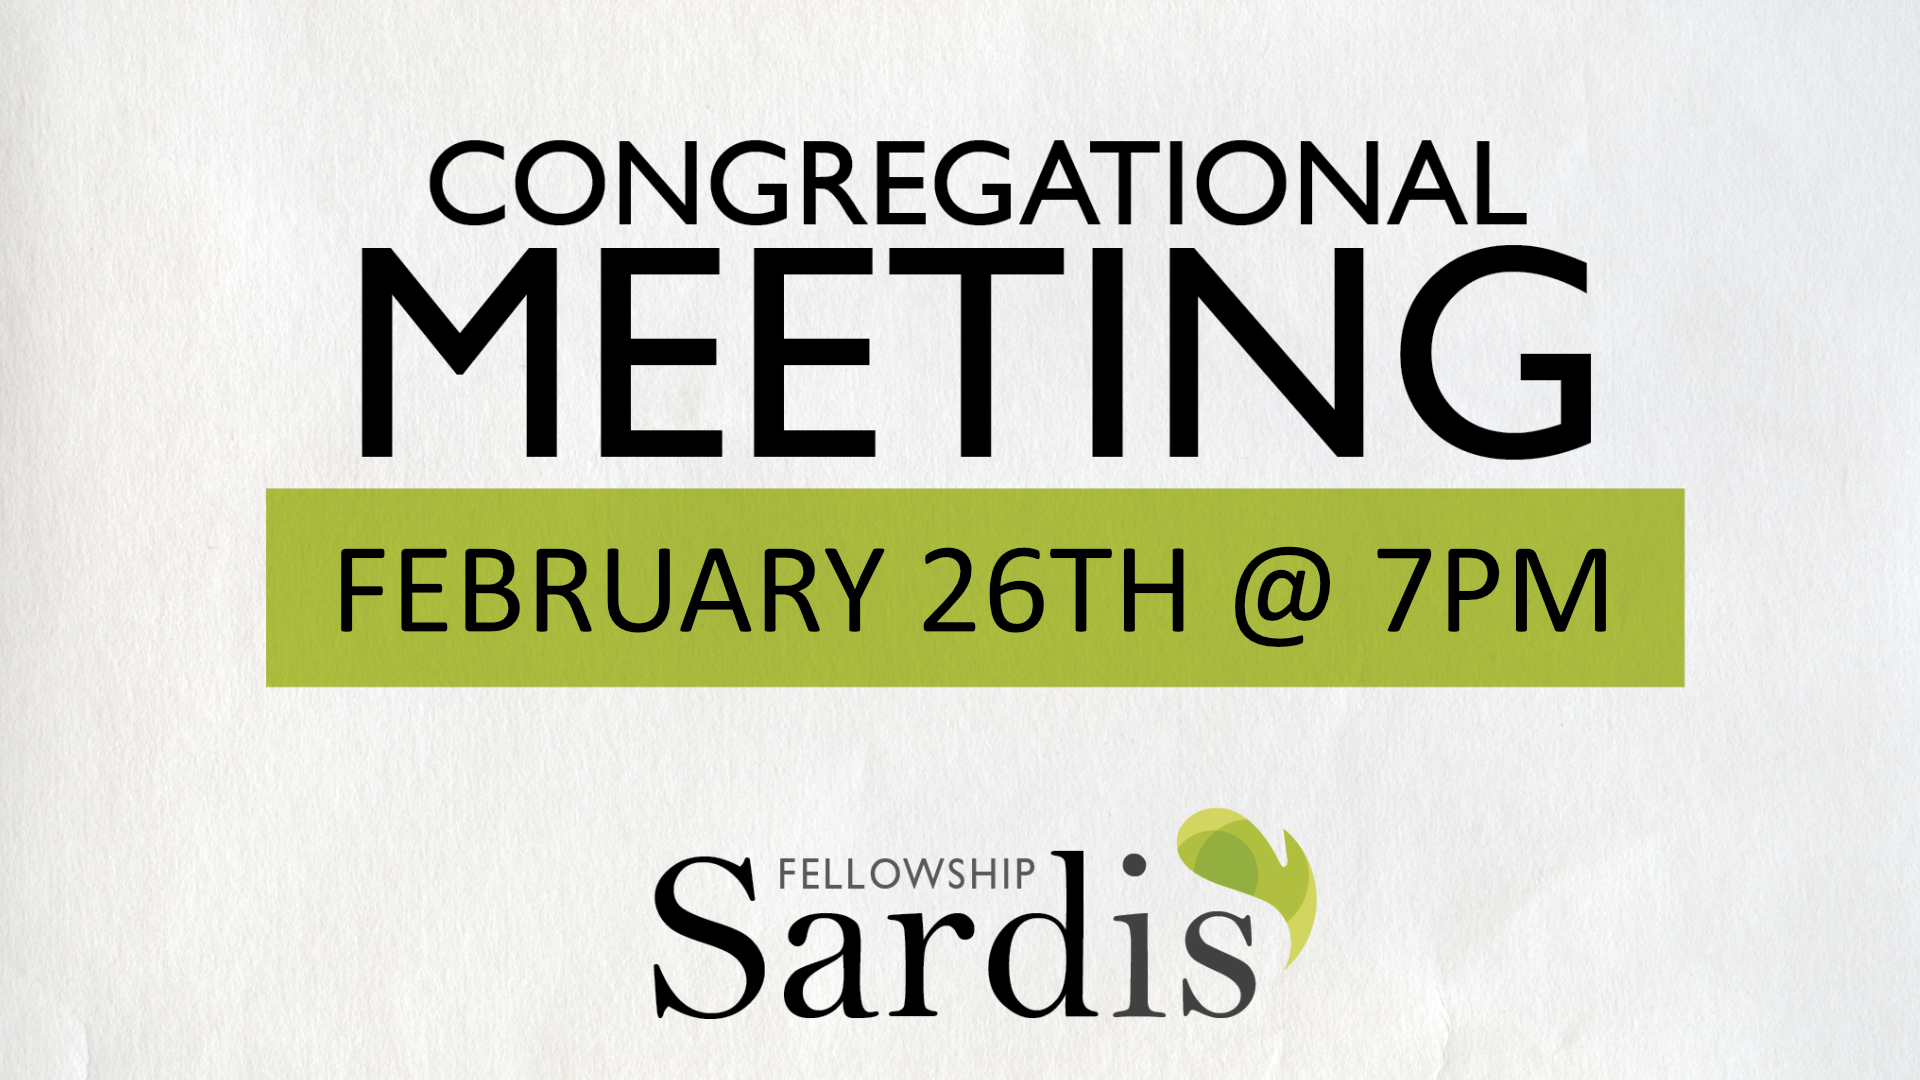 Congregational Meeting Power Point-February 26th, 2018.png